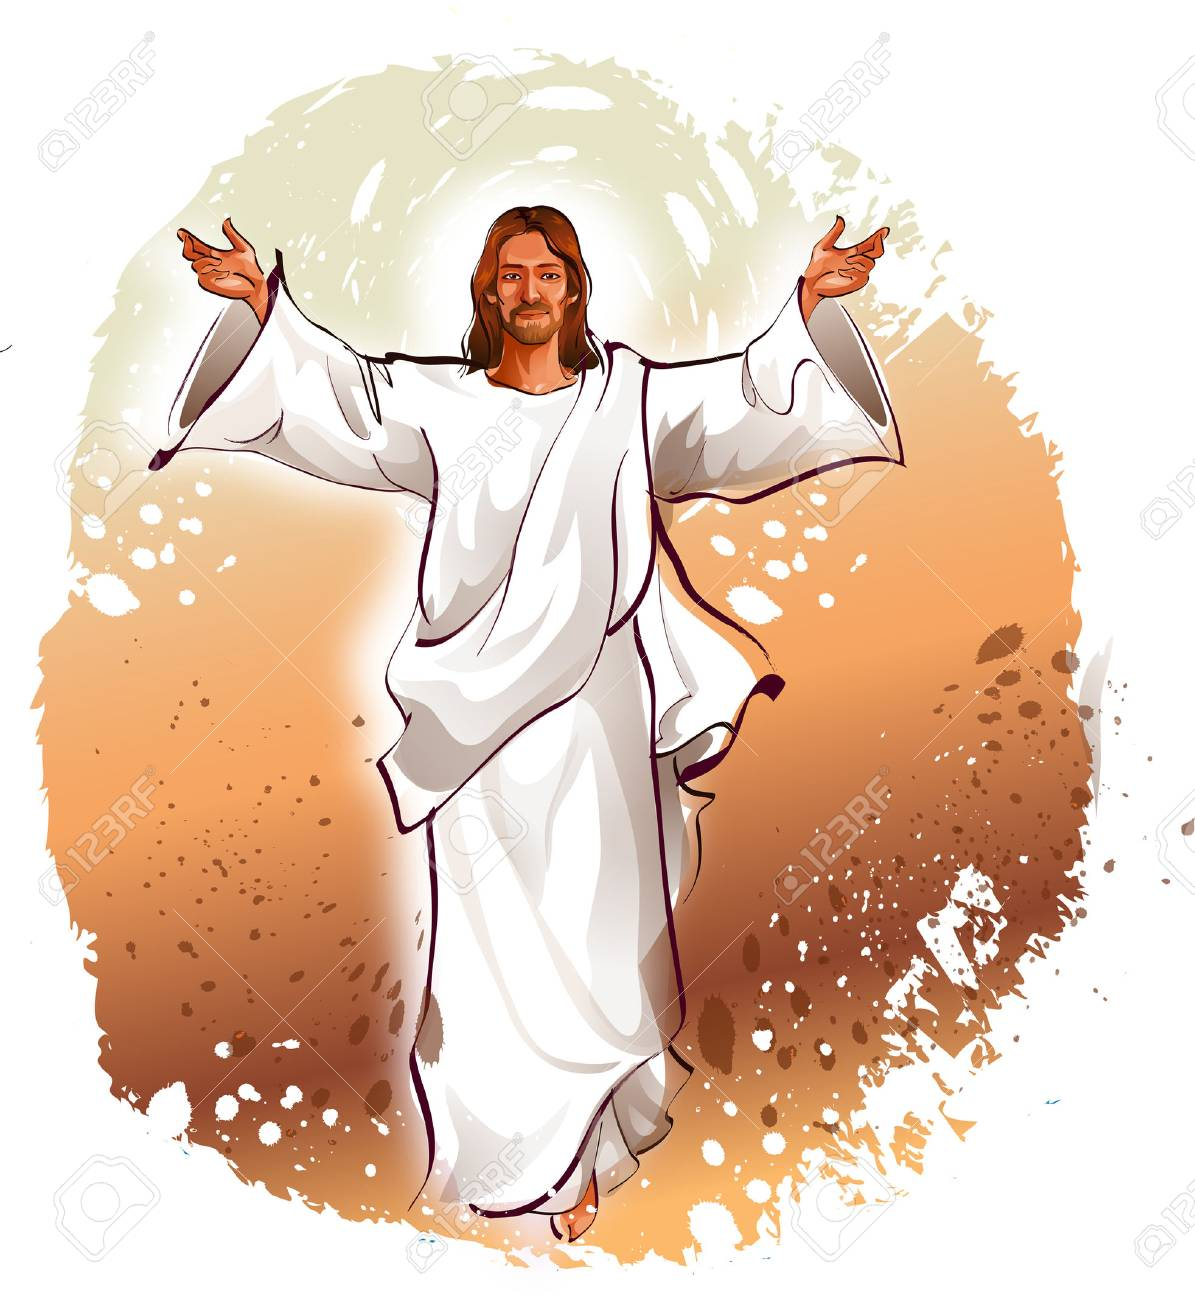 Jesus Christ blessing with his arms outstretched.